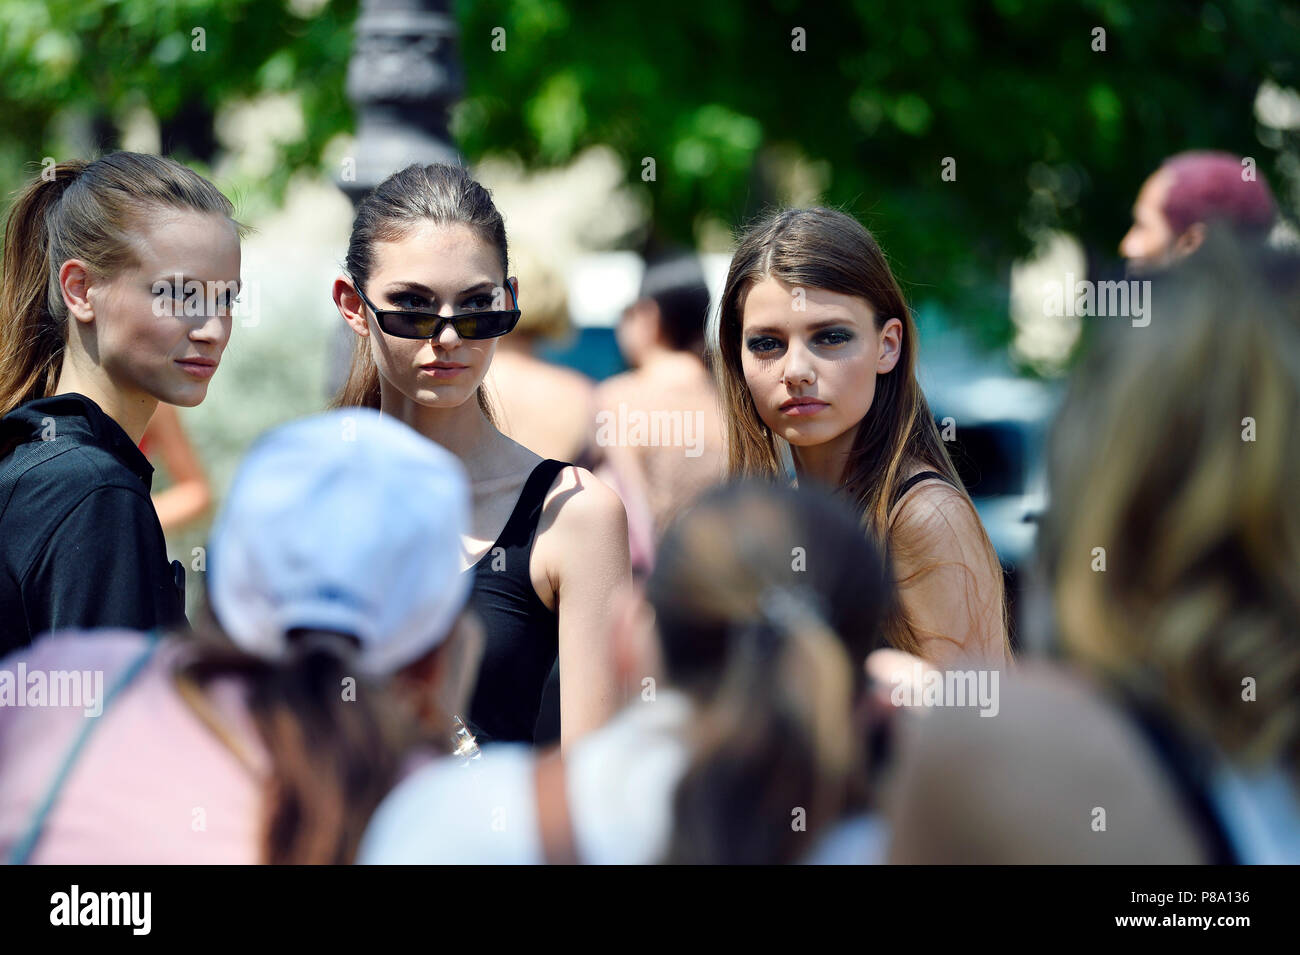 Models off duty - StreetStyle at CHANEL - Paris Fashion Week Haute Couture 2018/2019 - Paris - France - Stock Image